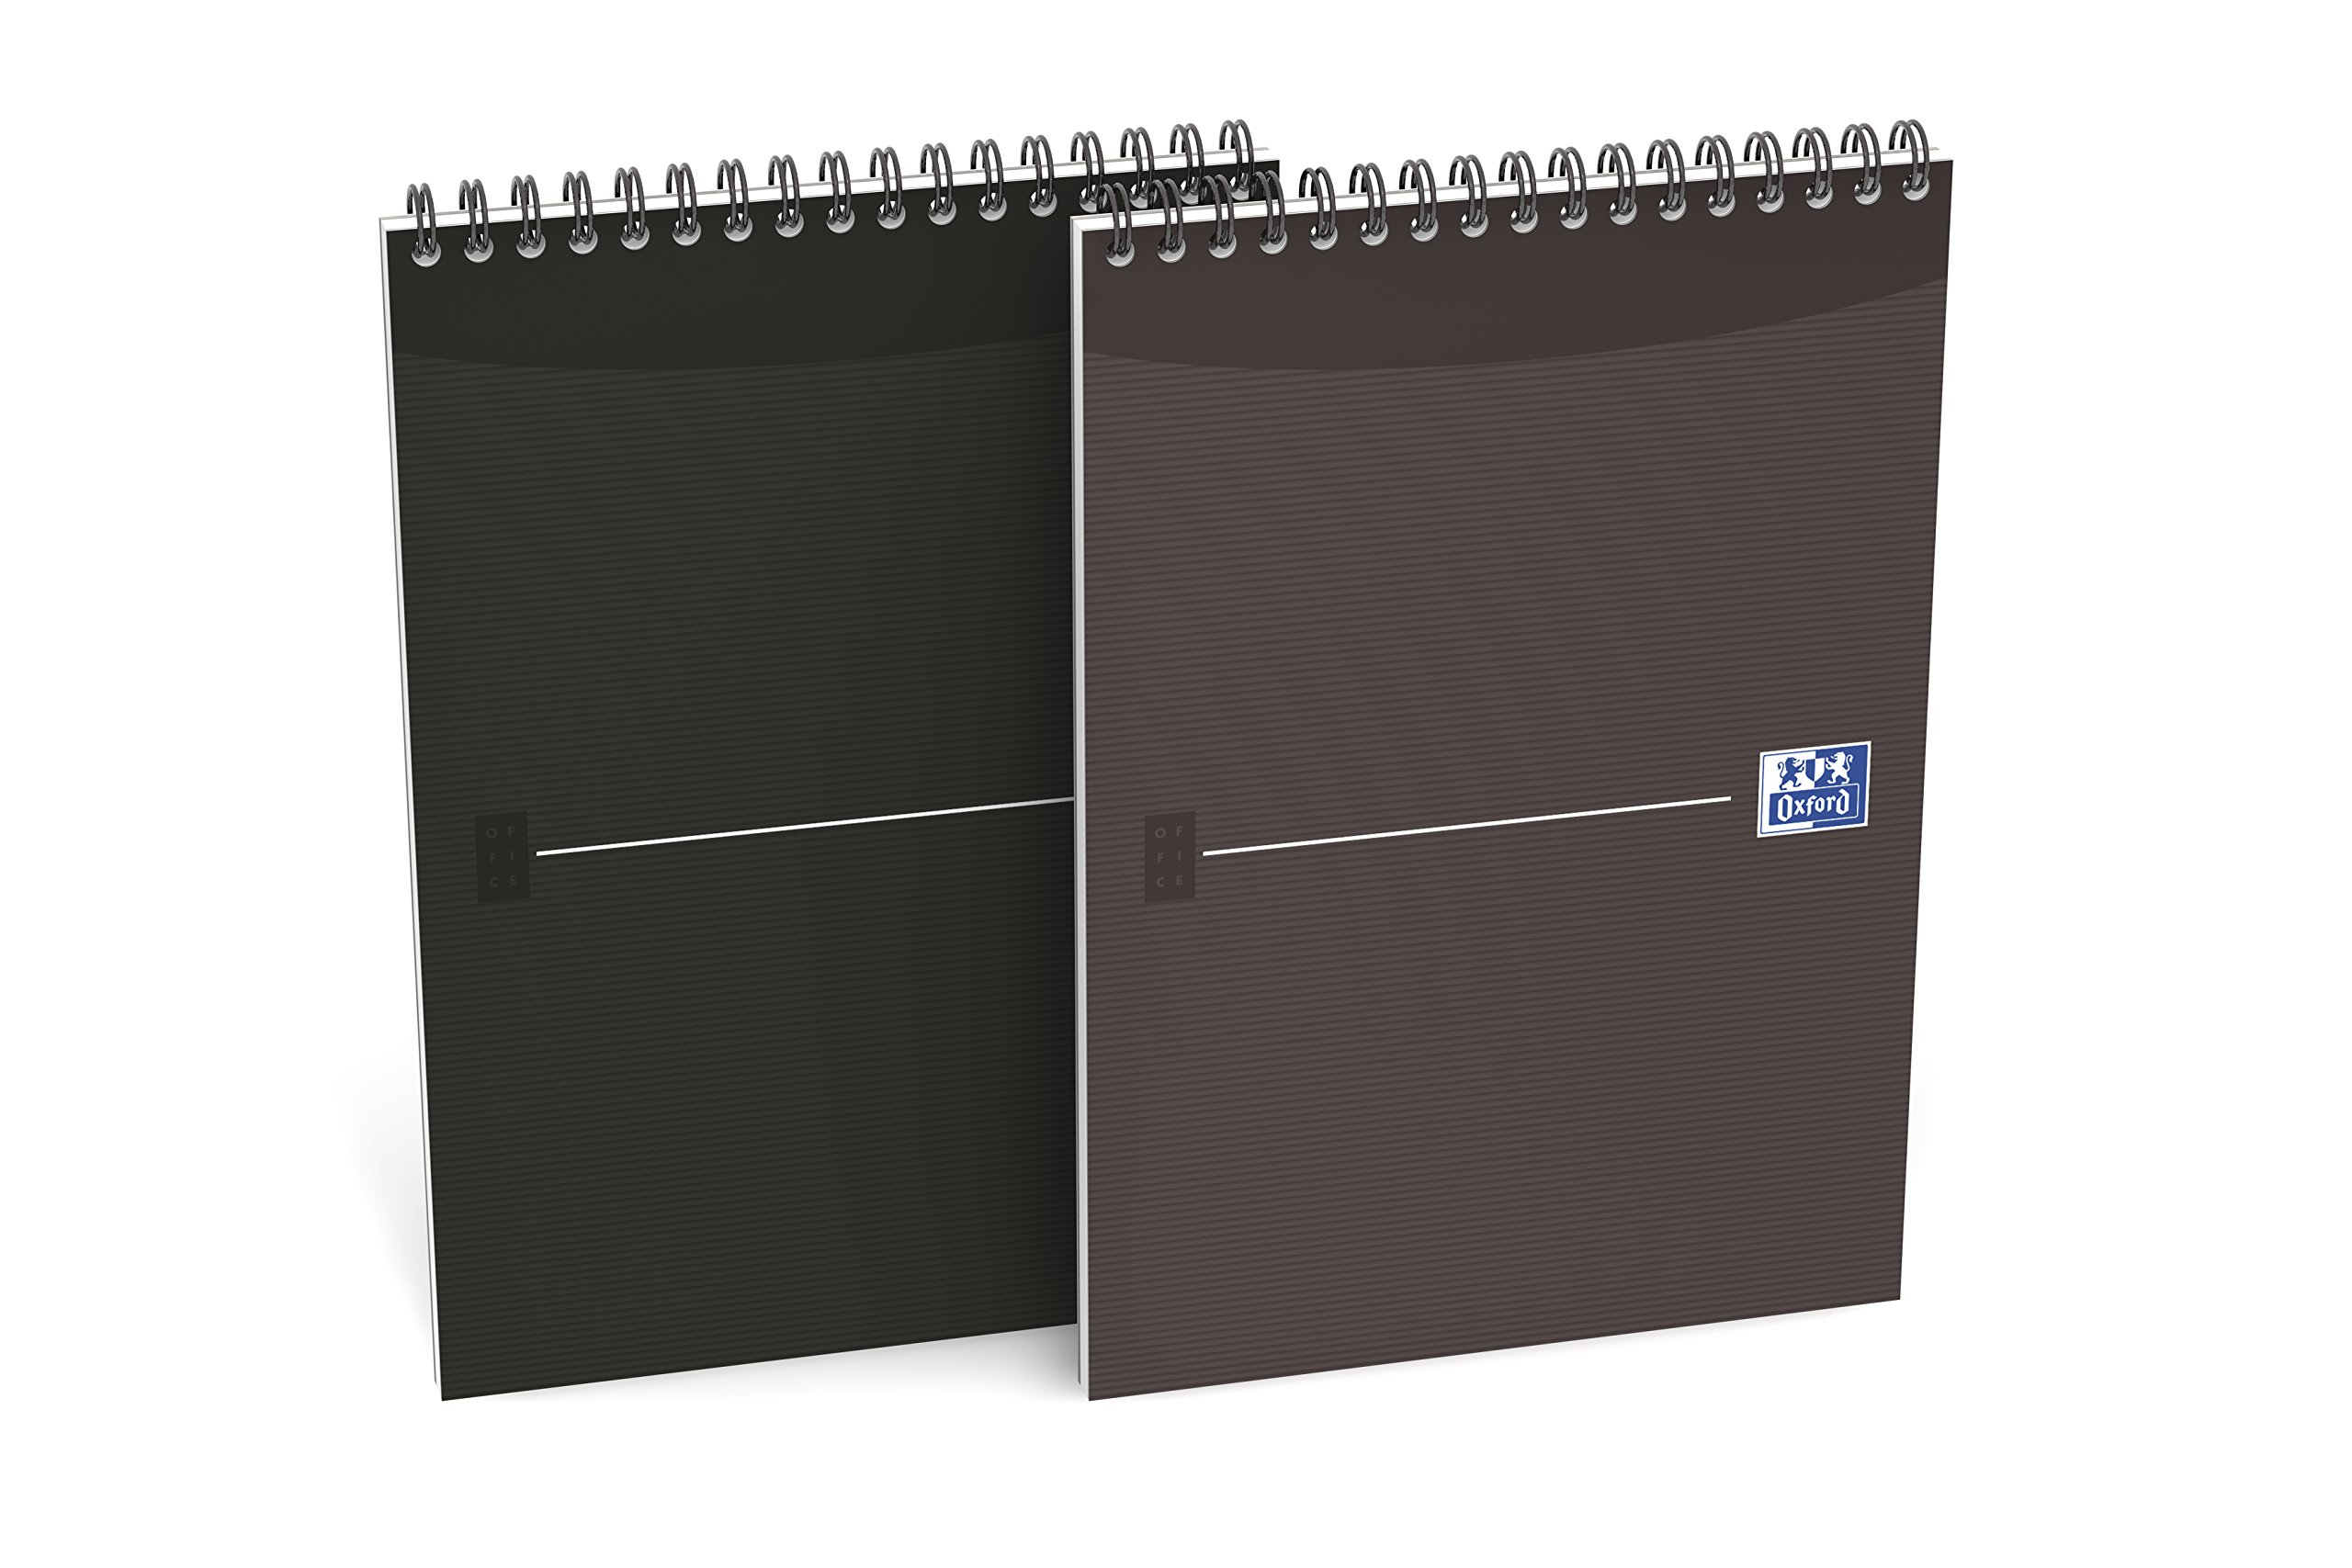 Oxford-10A5Notepad 14.8x 21cm Assorted Colours